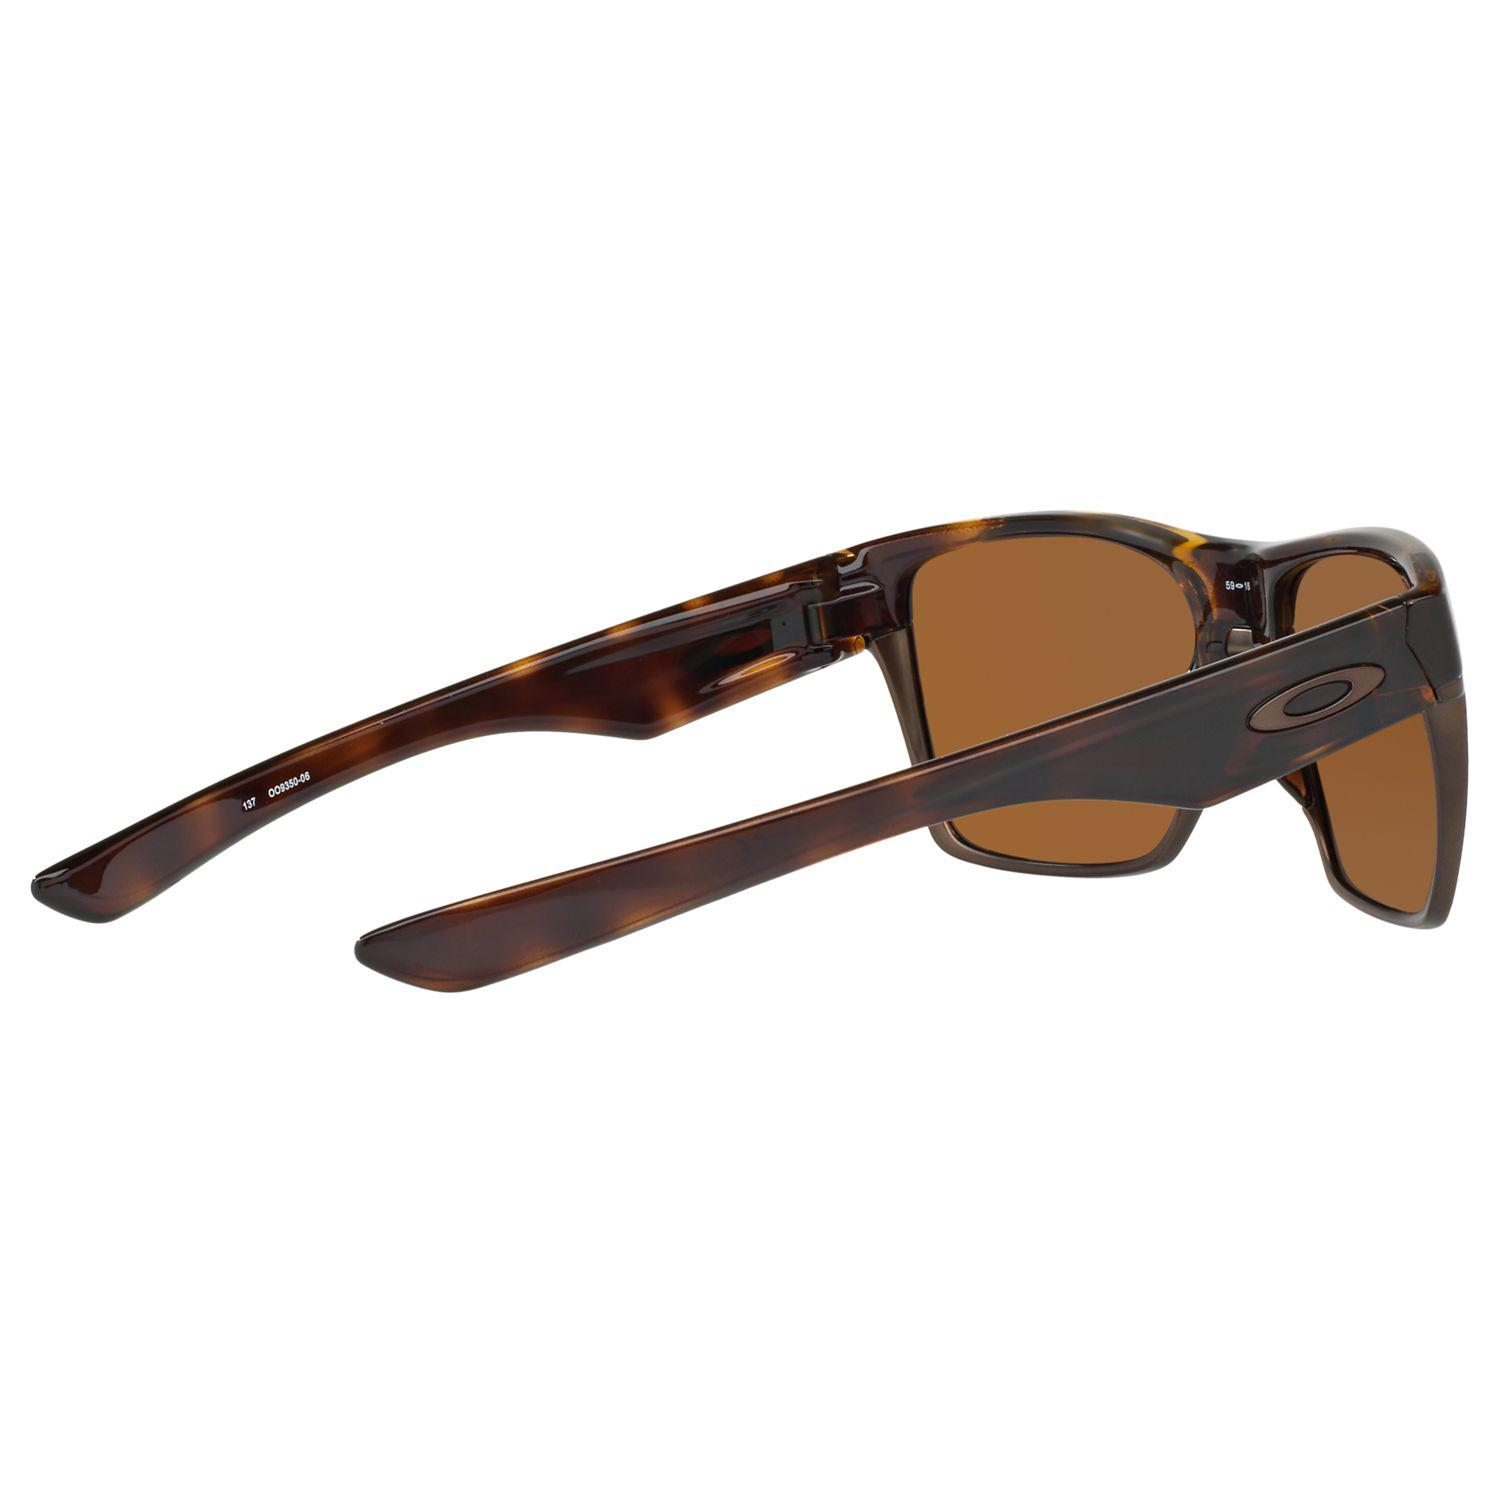 a5e9bce8f96 Oakley Oo9350 Two Face Xl Square Sunglasses in Brown for Men - Lyst